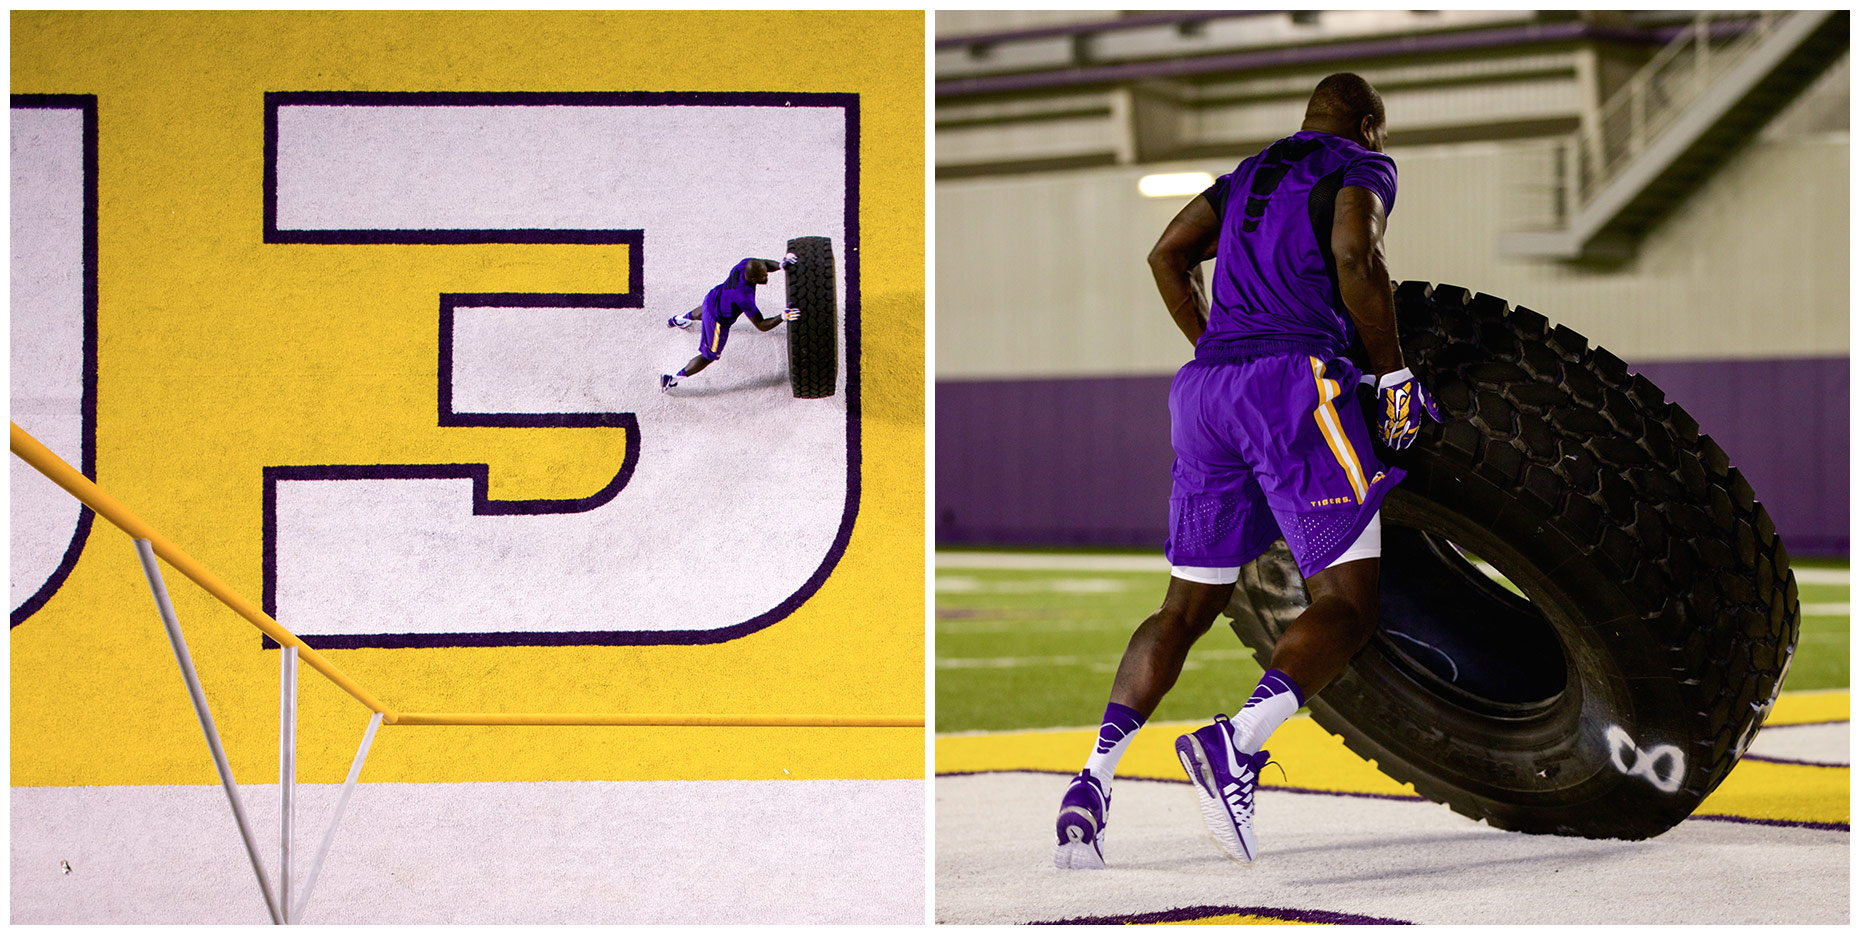 LSU Tigers | Project for Nike Digital